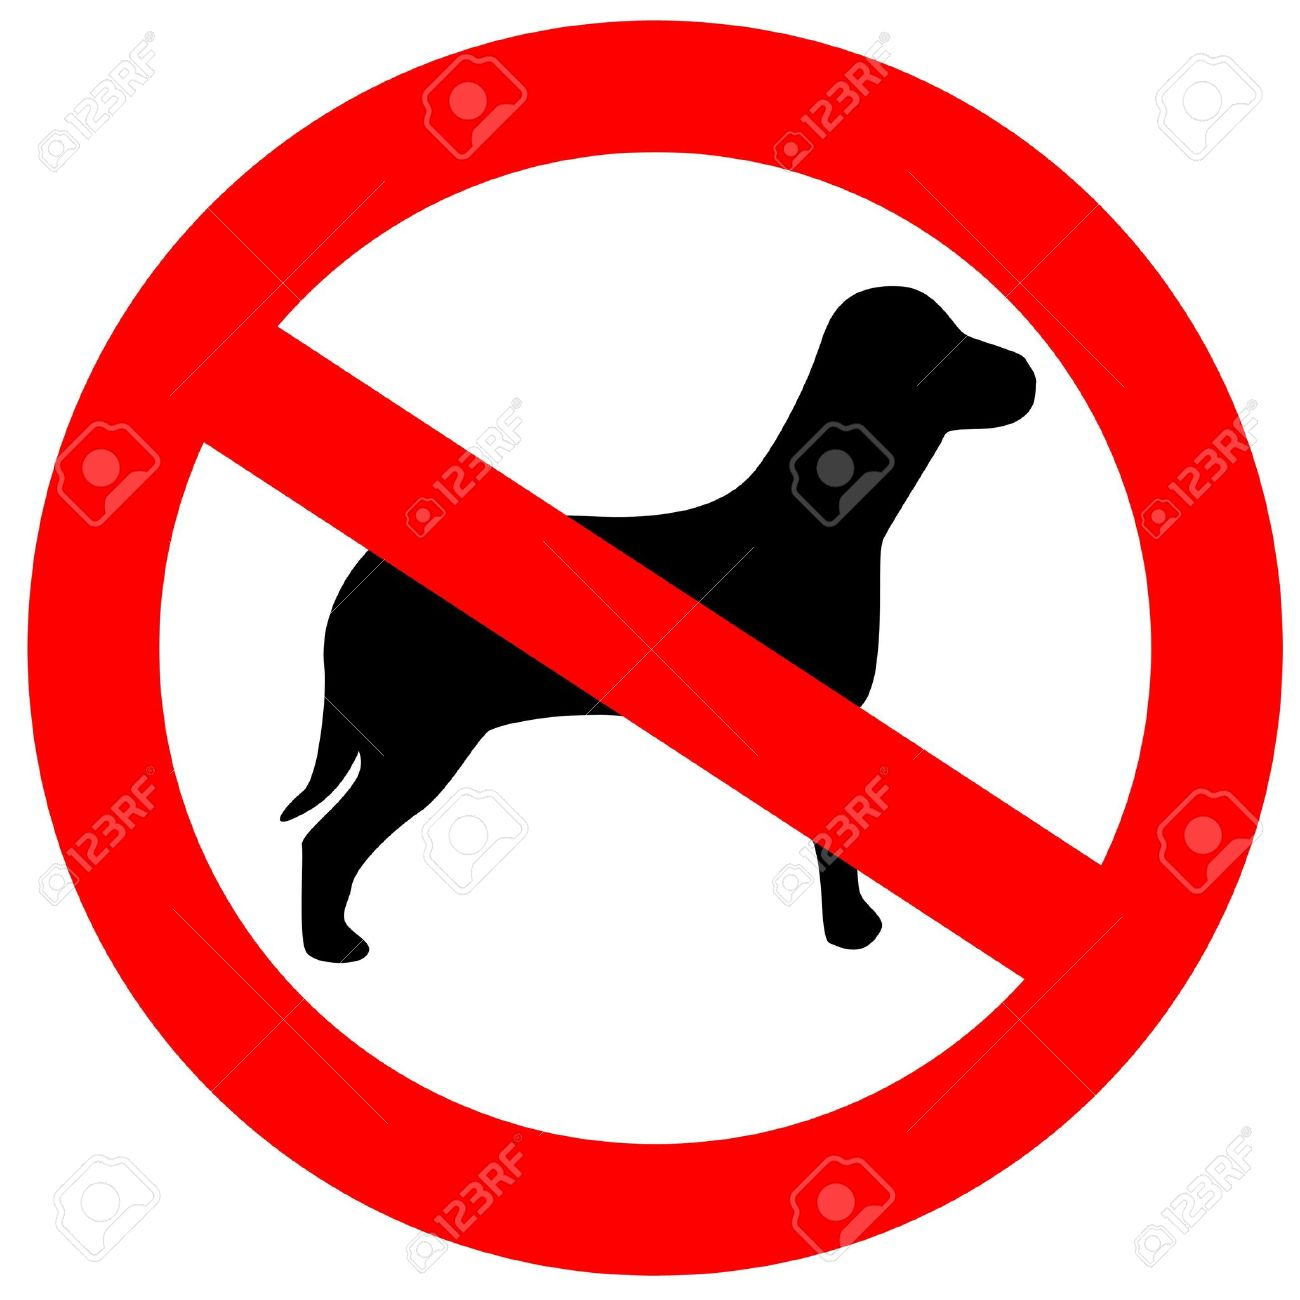 No dogs allowed Stock Photo - 6182235